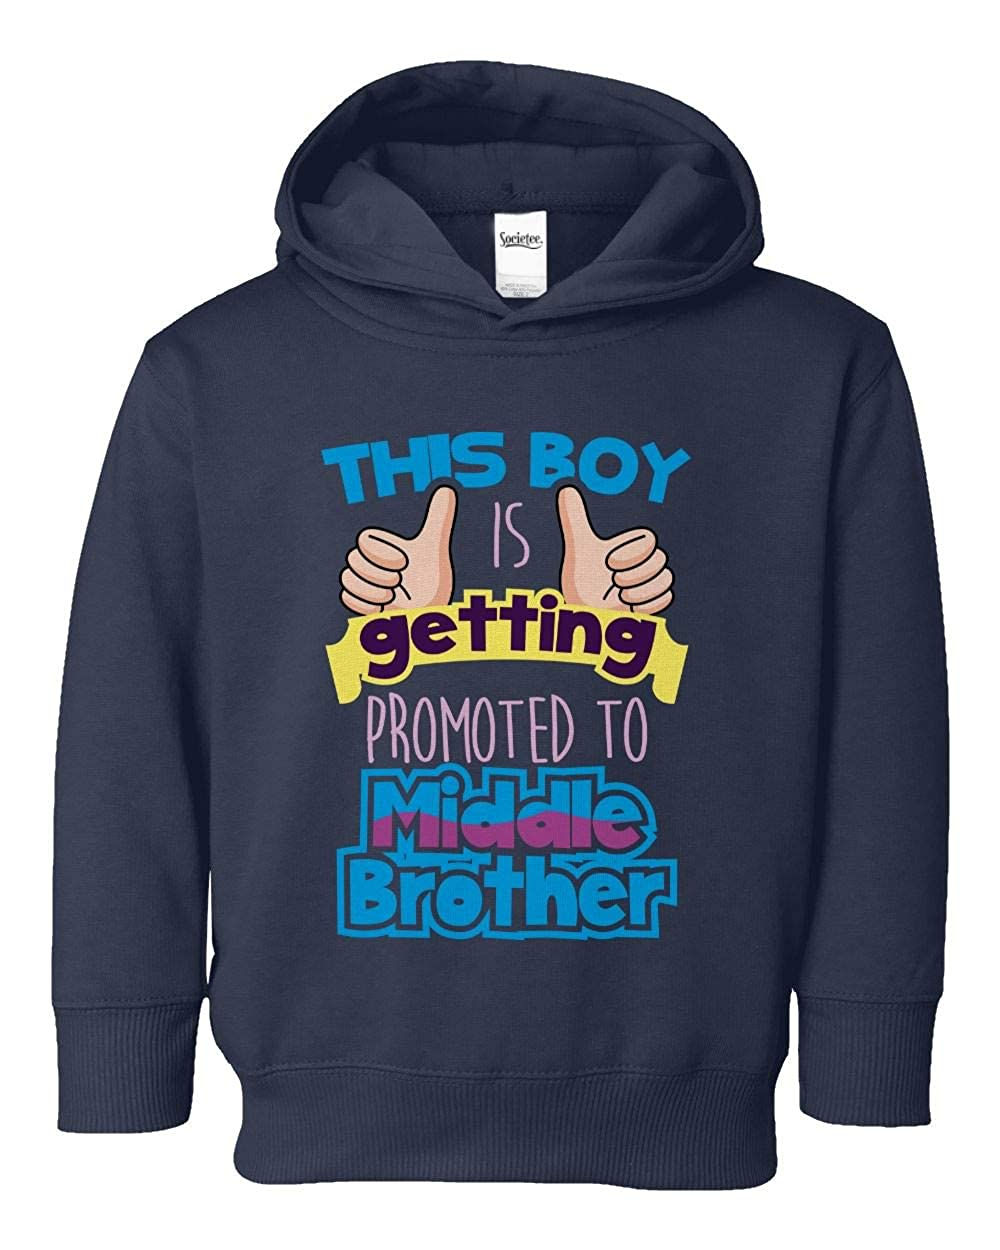 Societee This Boy is Getting Promoted to Middle Brother Girls Boys Toddler Hooded Sweatshirt